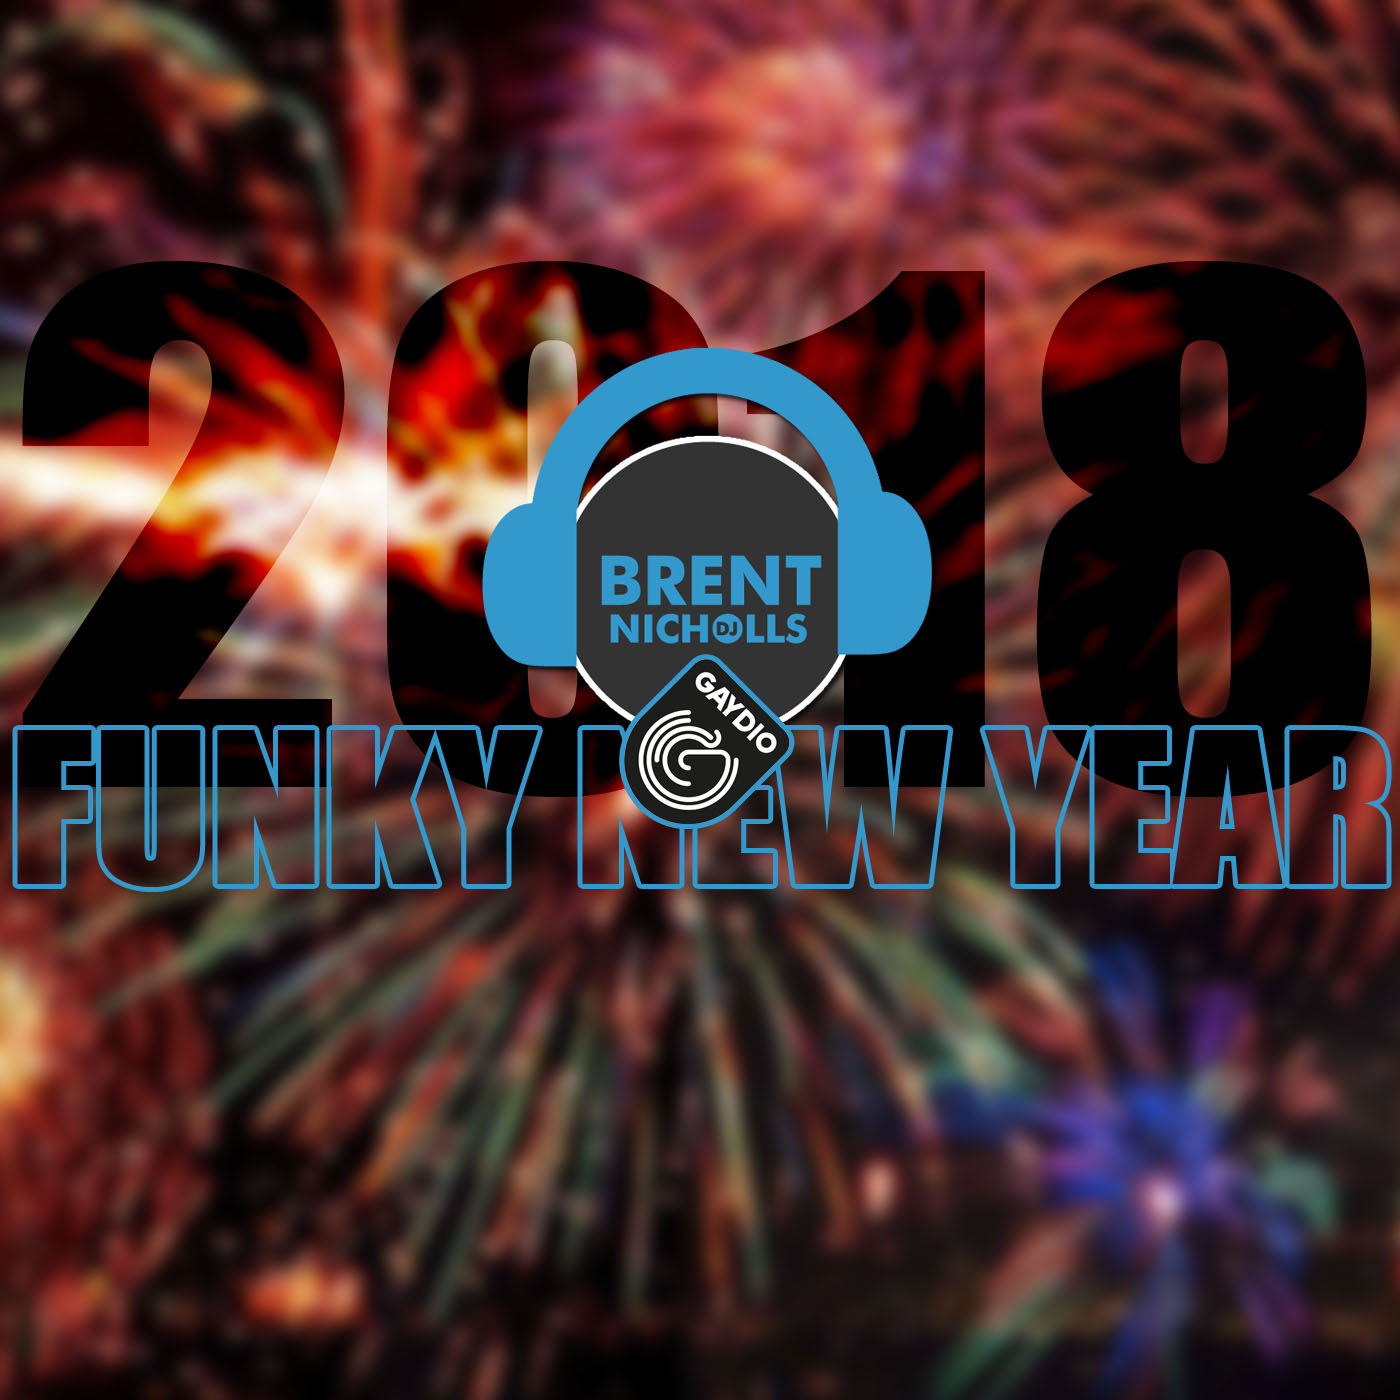 PODCAST: GAYDIO FUNKY NEW YEAR 2017/18